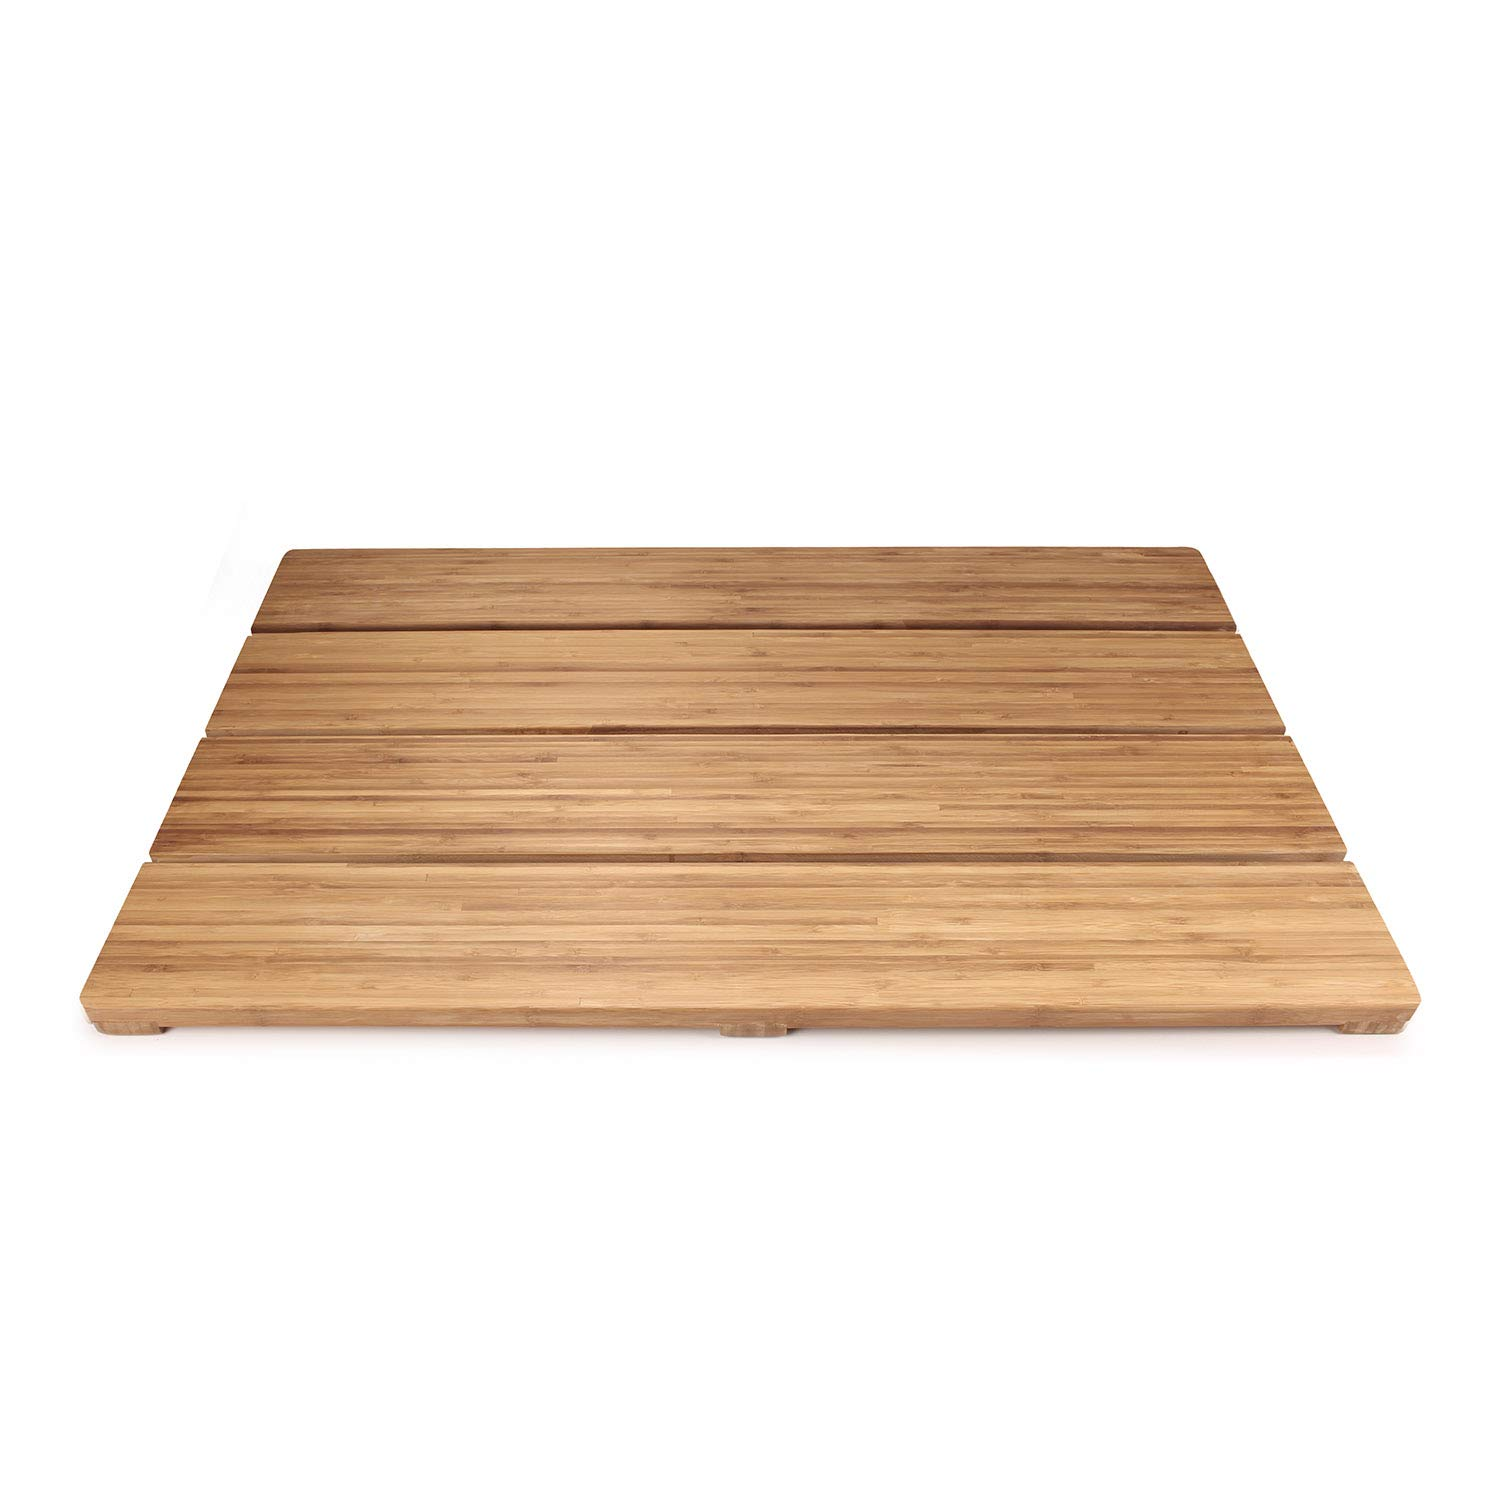 BambooMN Brand - Spa Style Raised Bamboo Bathmat - Extra Large Rectangle